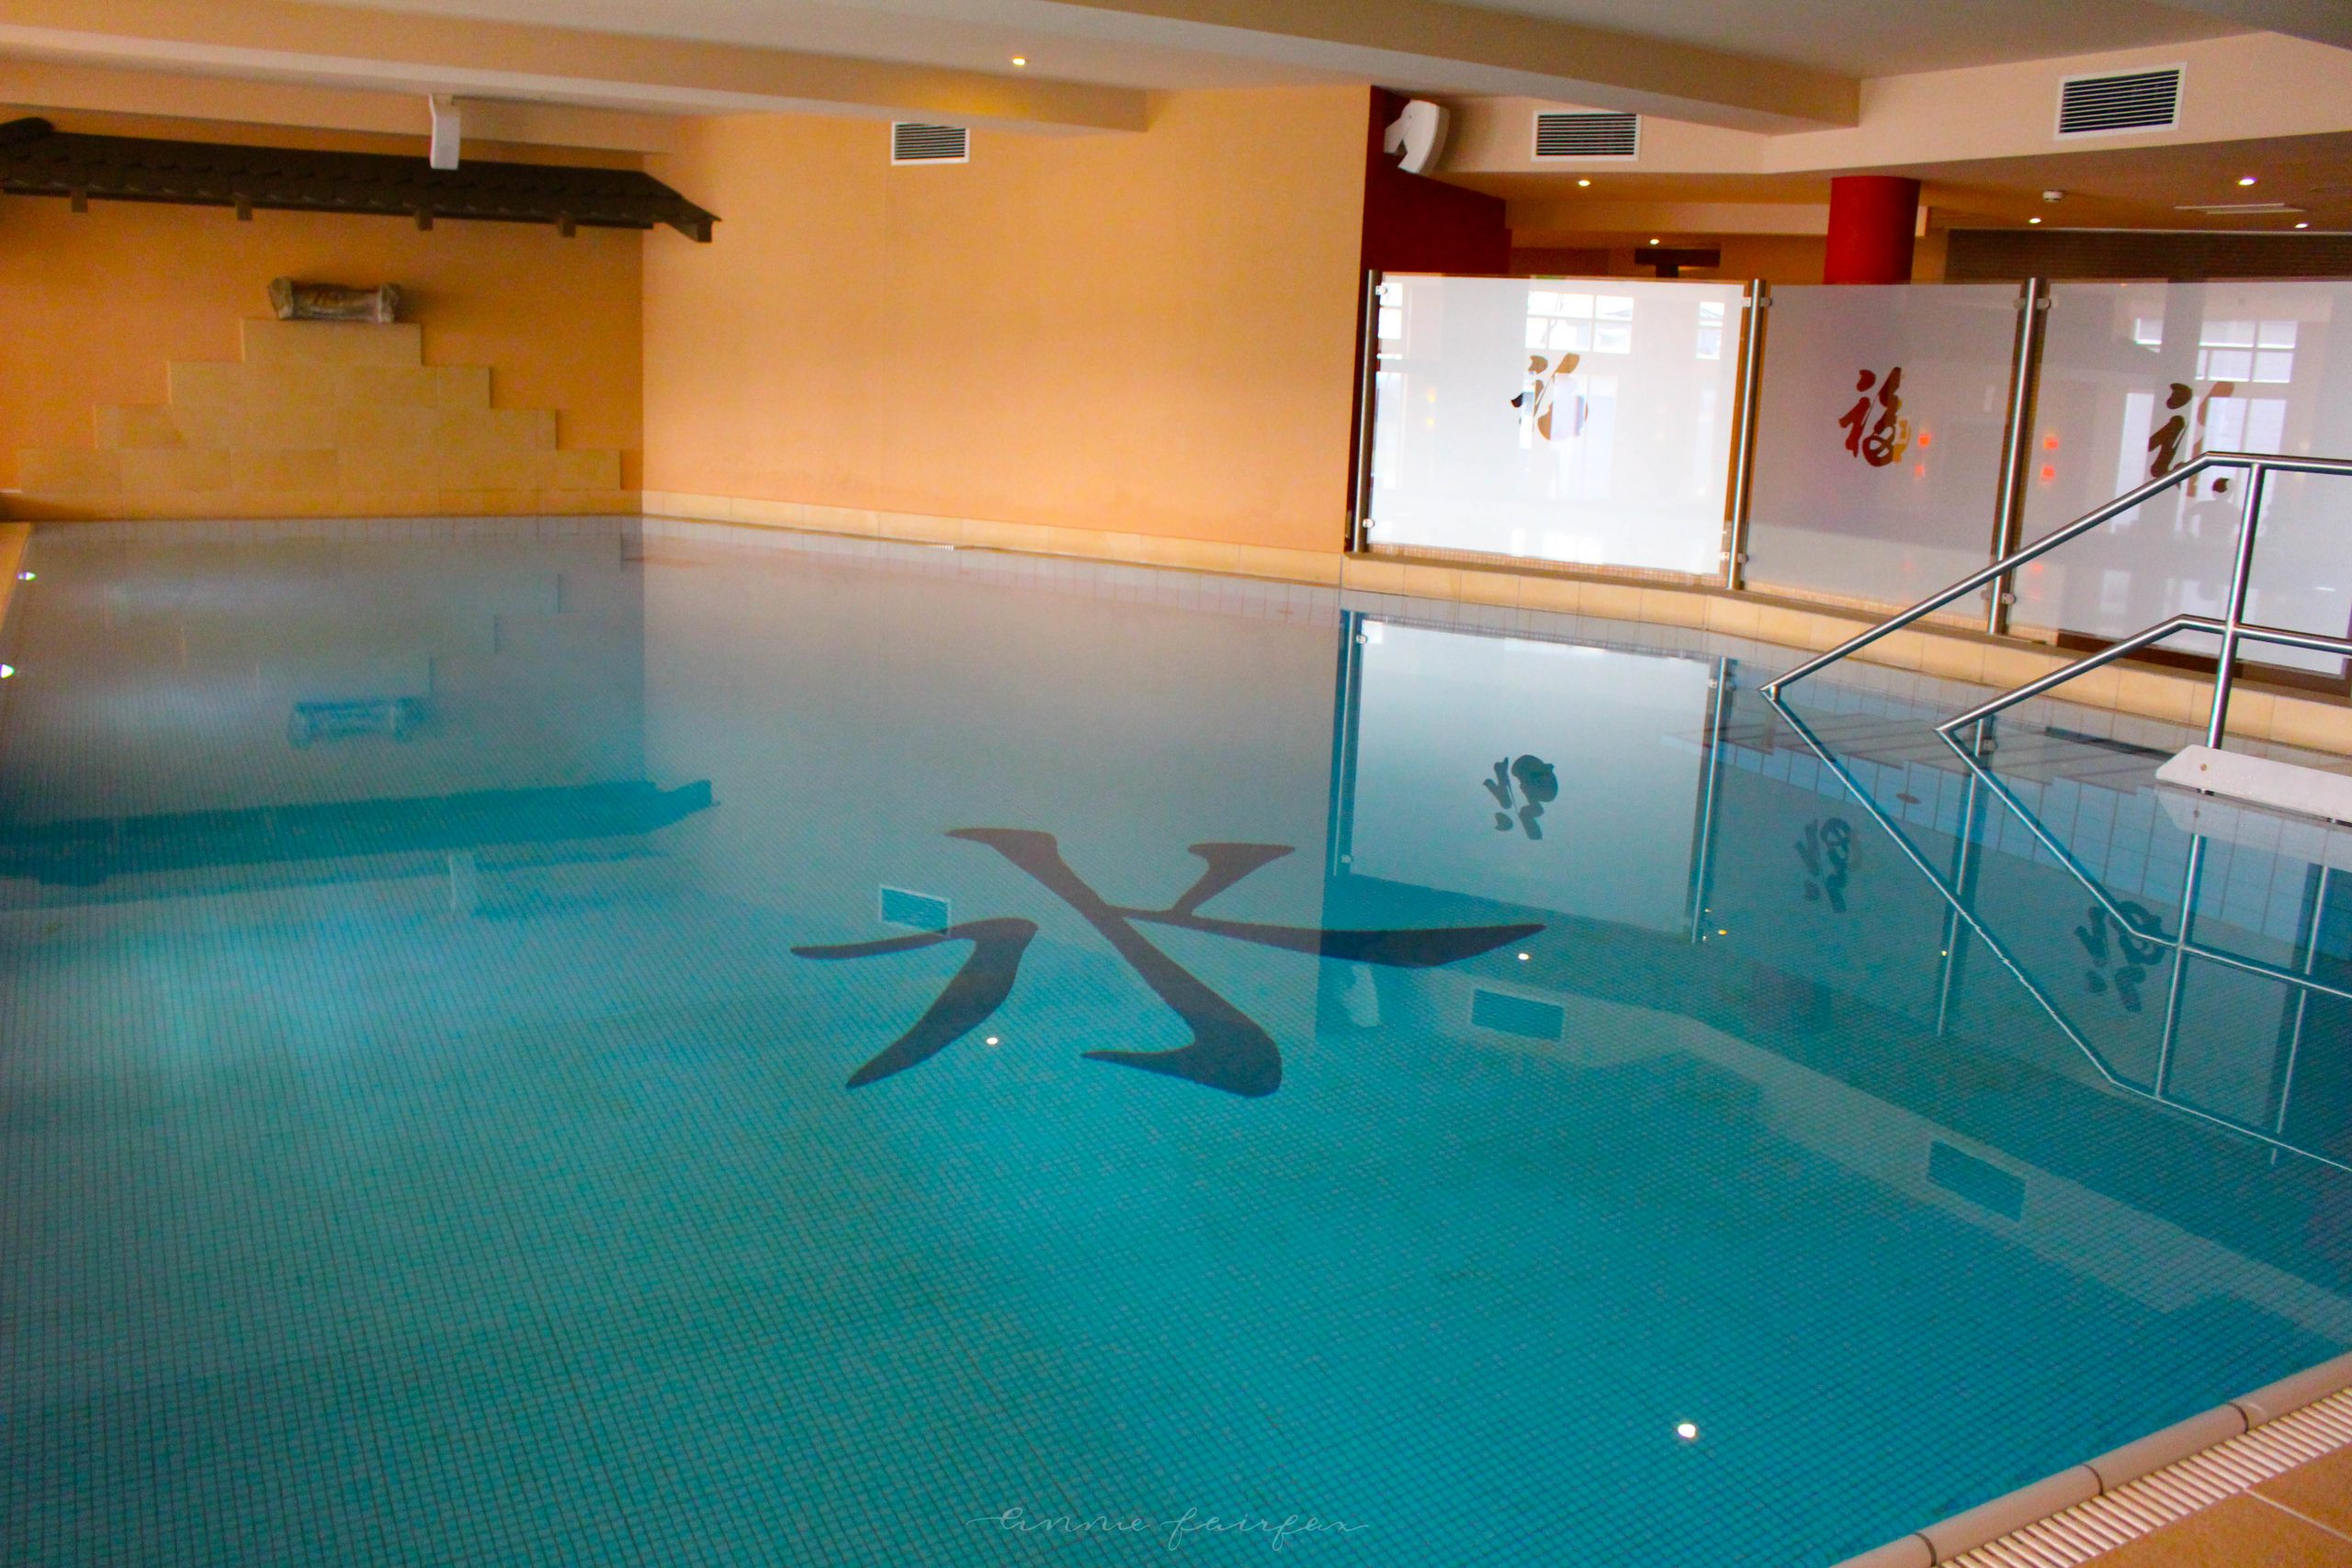 Tao Spa at Resort Schwielosee Luxury Hotels and Resorts of the World in Berlin Werder Germany